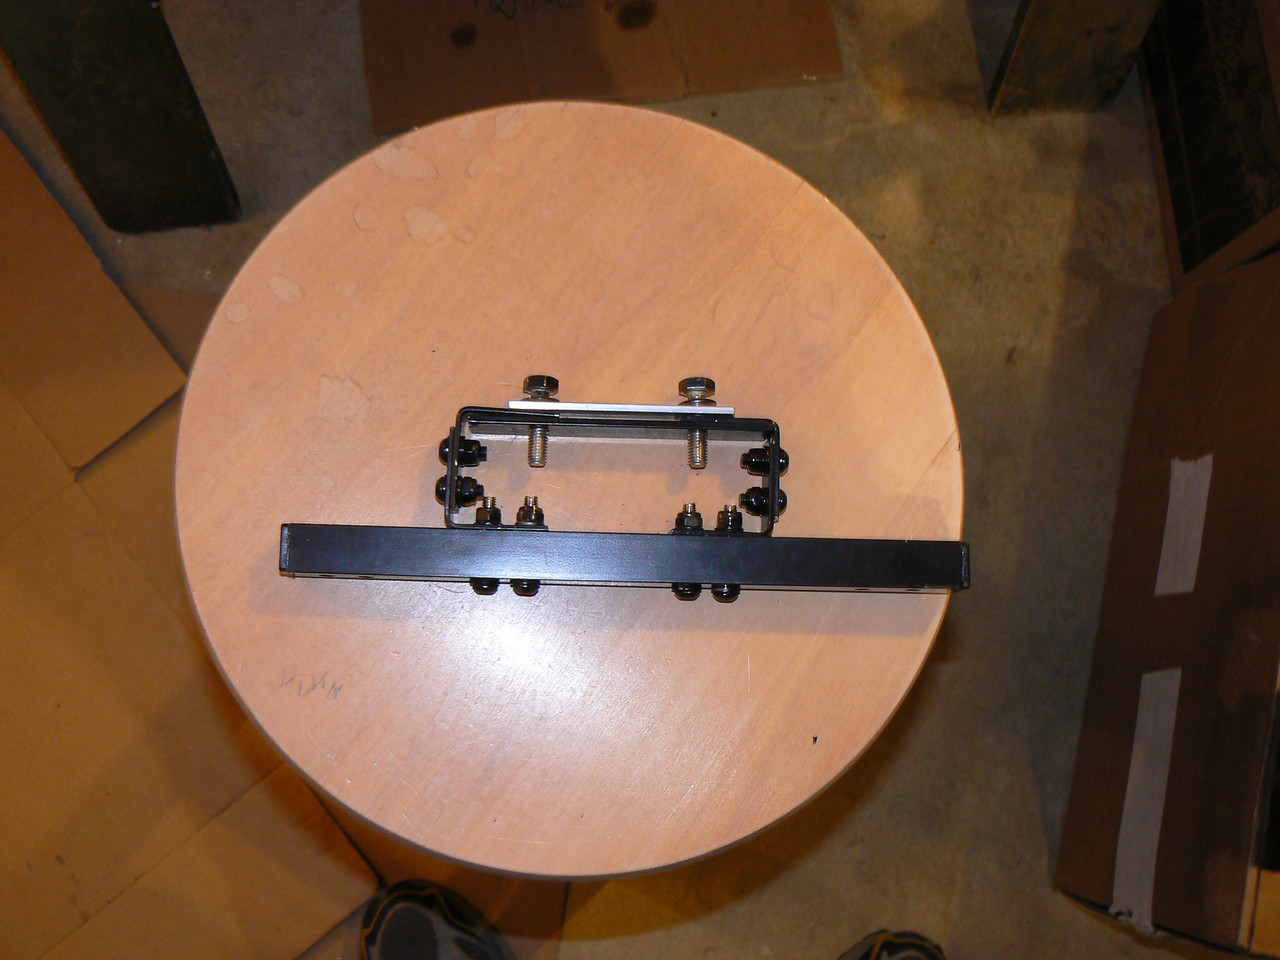 "My own built heat shield and tool tube mounting: (Because I can't weld and can be cheap sometimes)<br /> This is the main support bracket. Built with 1"" square aluminum tube, 4 galvanized ""L"" brackets, and some flat alum stock. This will support the heat shield and tool tube supports towards the rear of the bike."